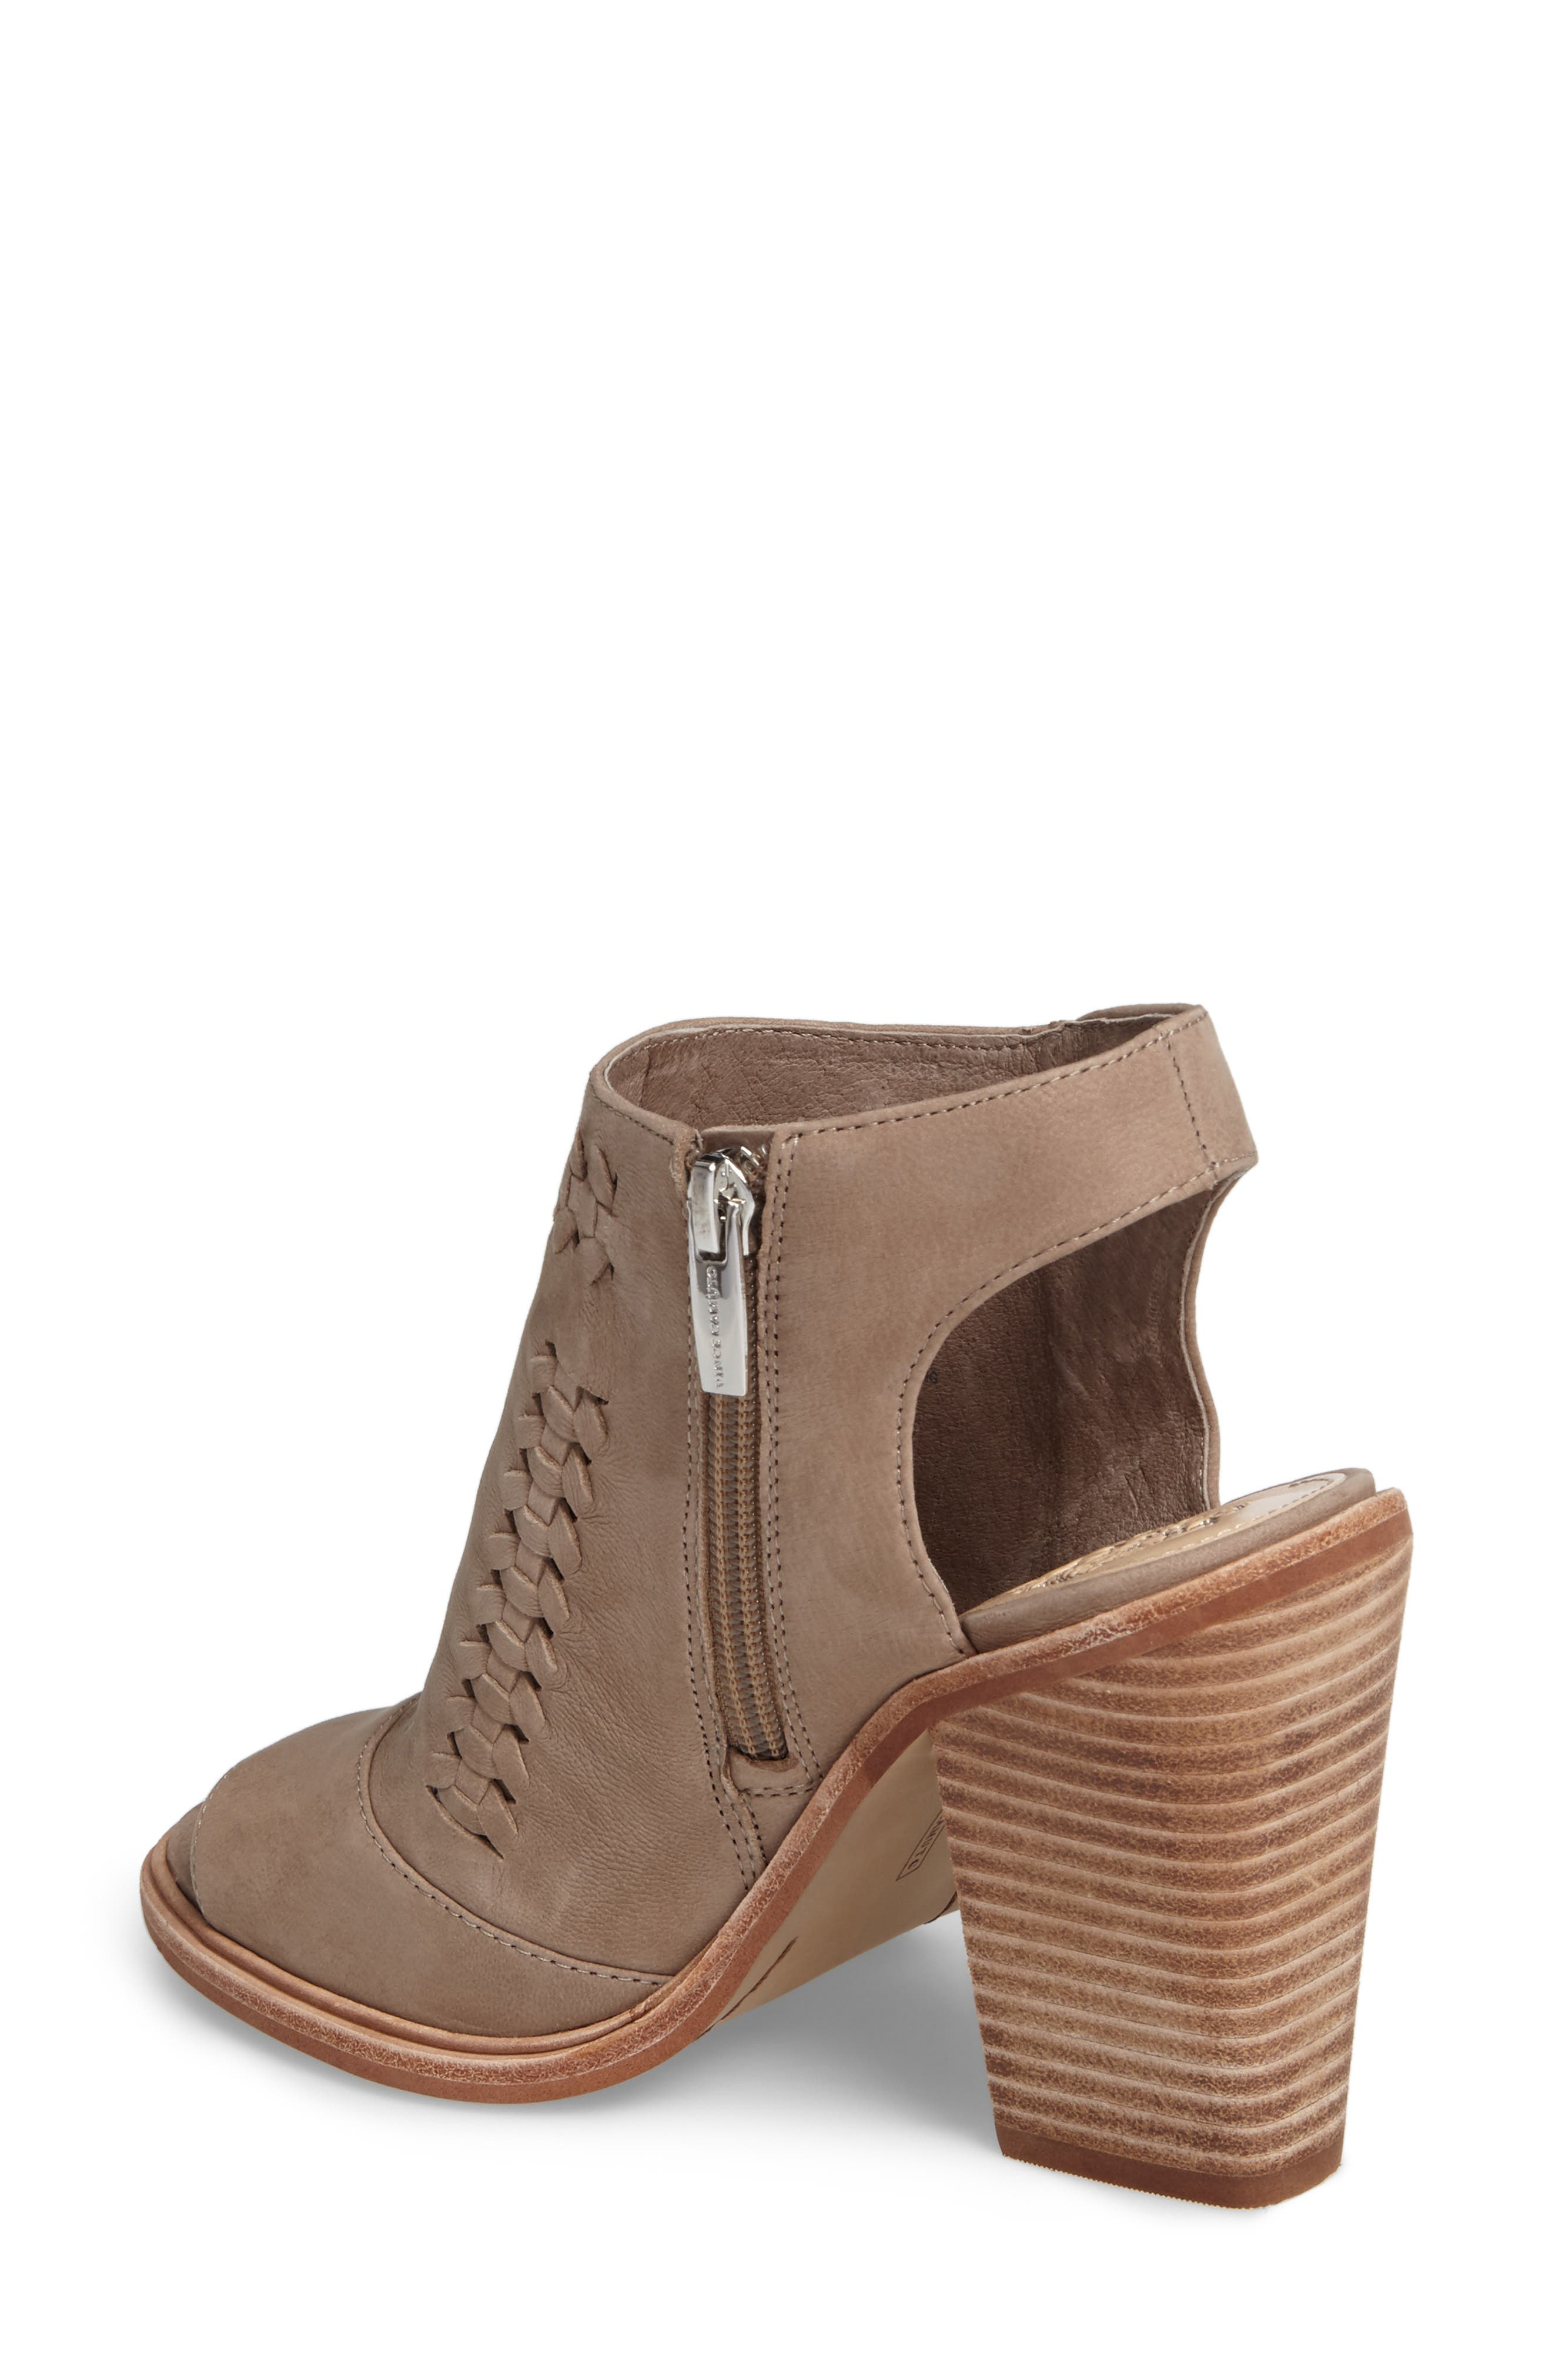 Alternate Image 2  - Vince Camuto Katri Woven Bootie (Women) (Nordstrom Exclusive)